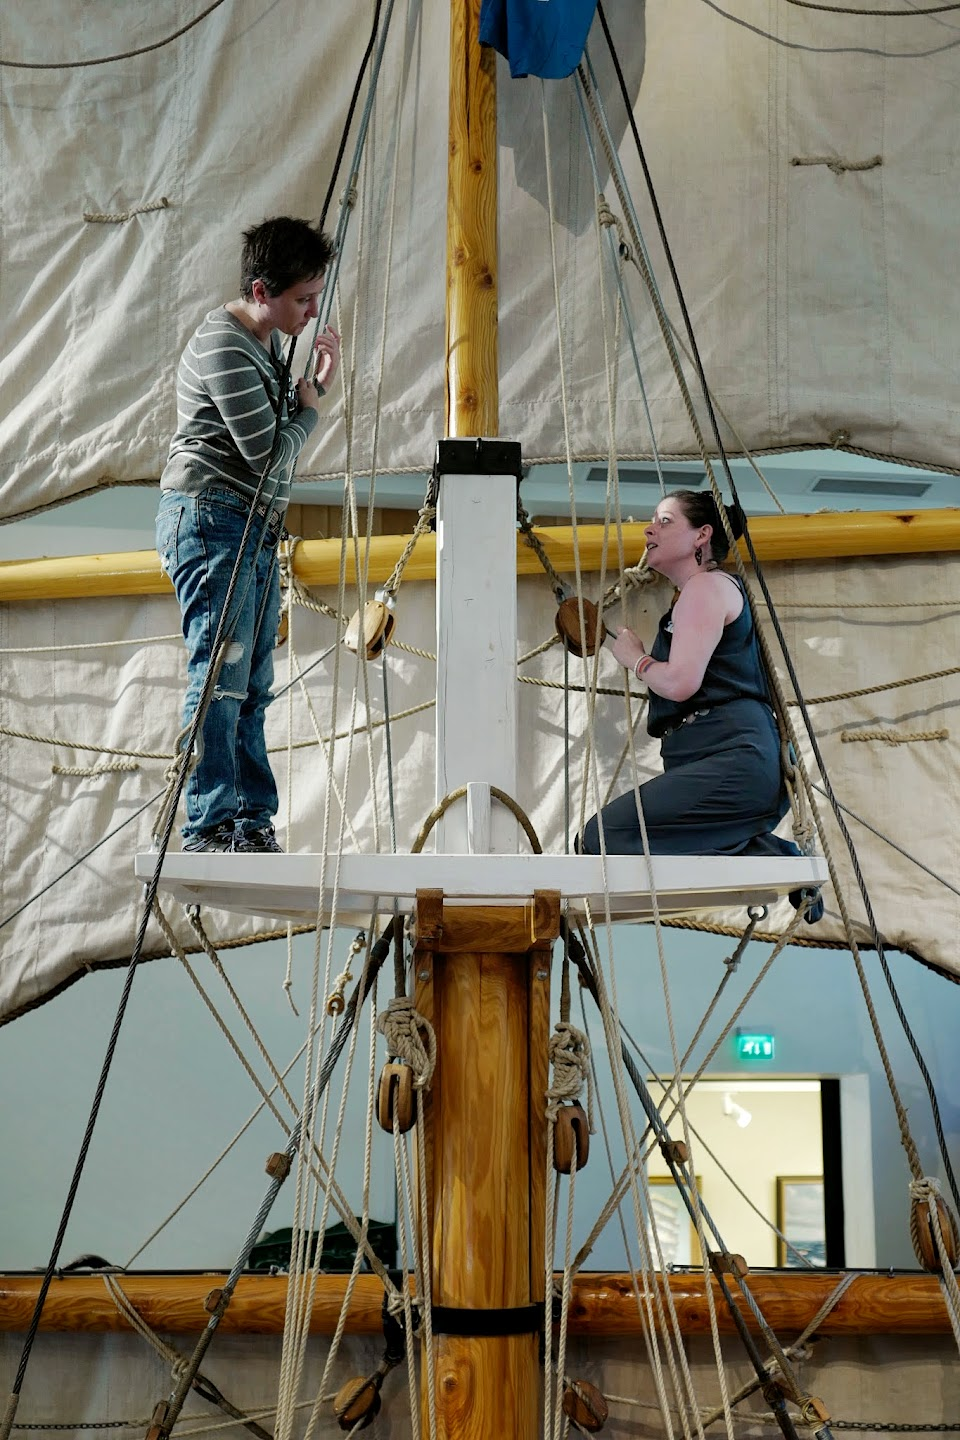 2015-06-28-goh-visit-to-aland-maritime-museum-and-pommern - L1020598.jpg